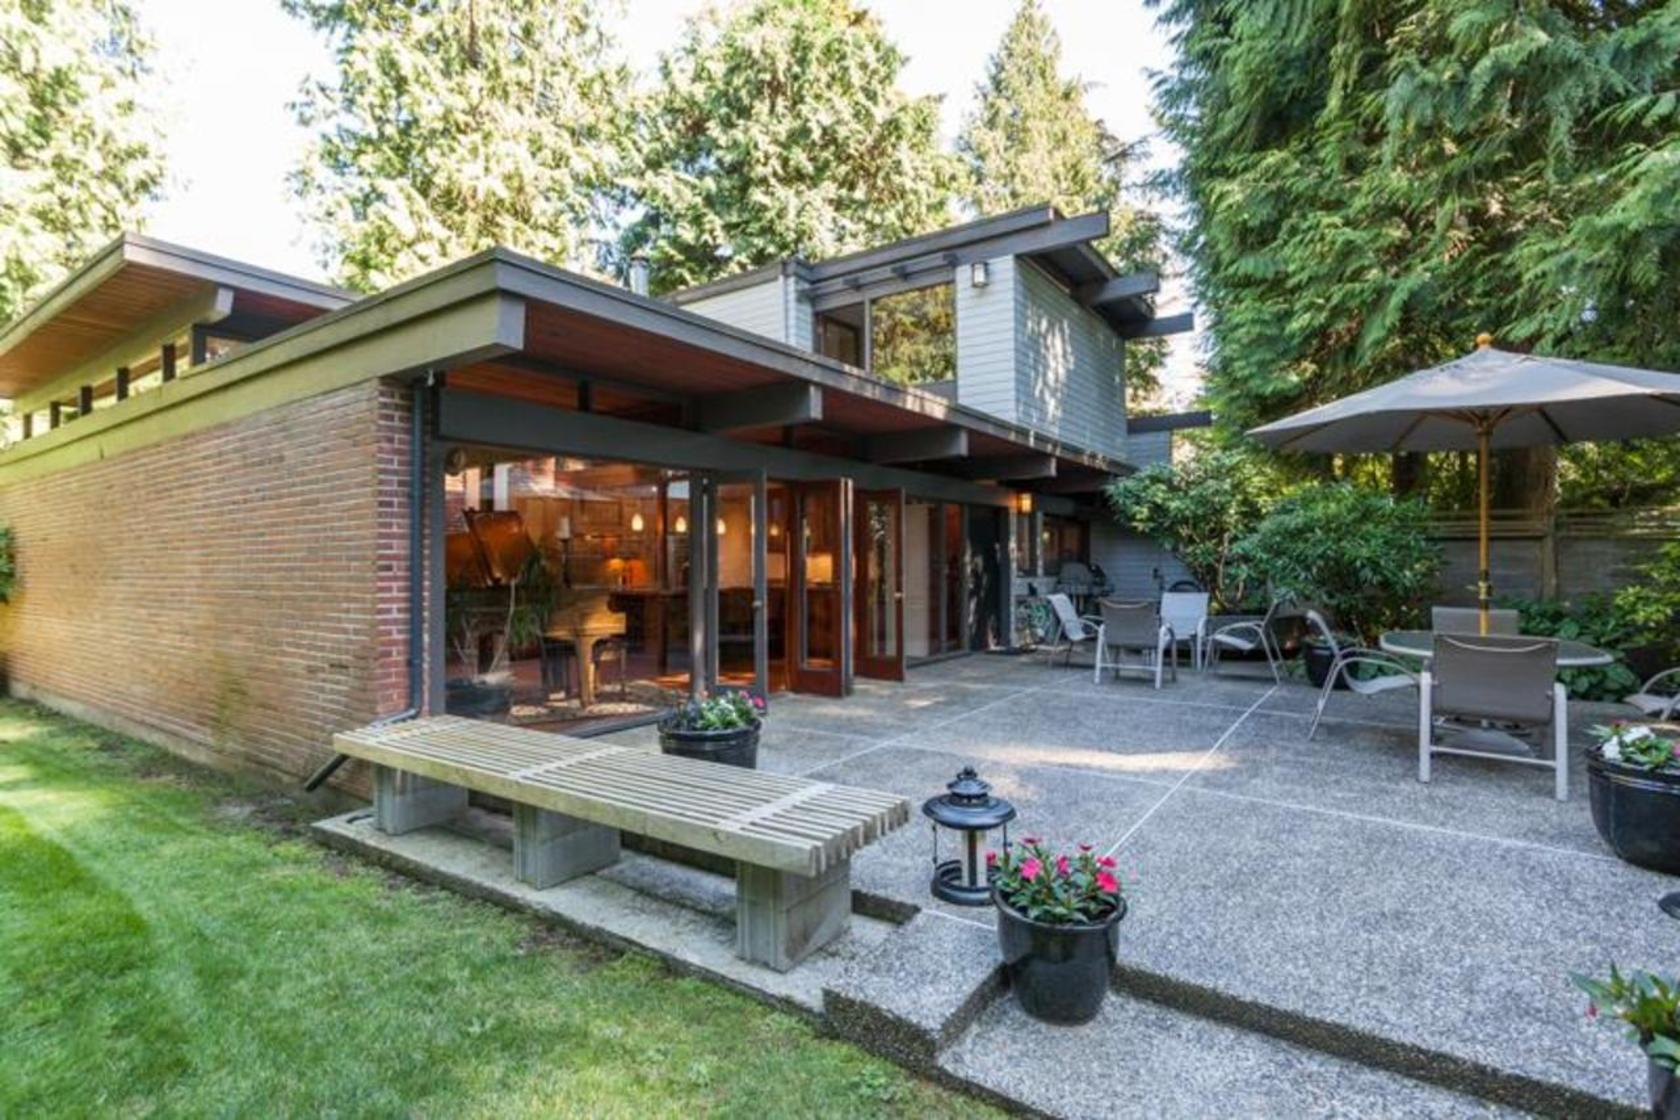 4126-virginia-crescent-canyon-heights-nv-north-vancouver-03 at 4126 Virginia Crescent, Canyon Heights NV, North Vancouver